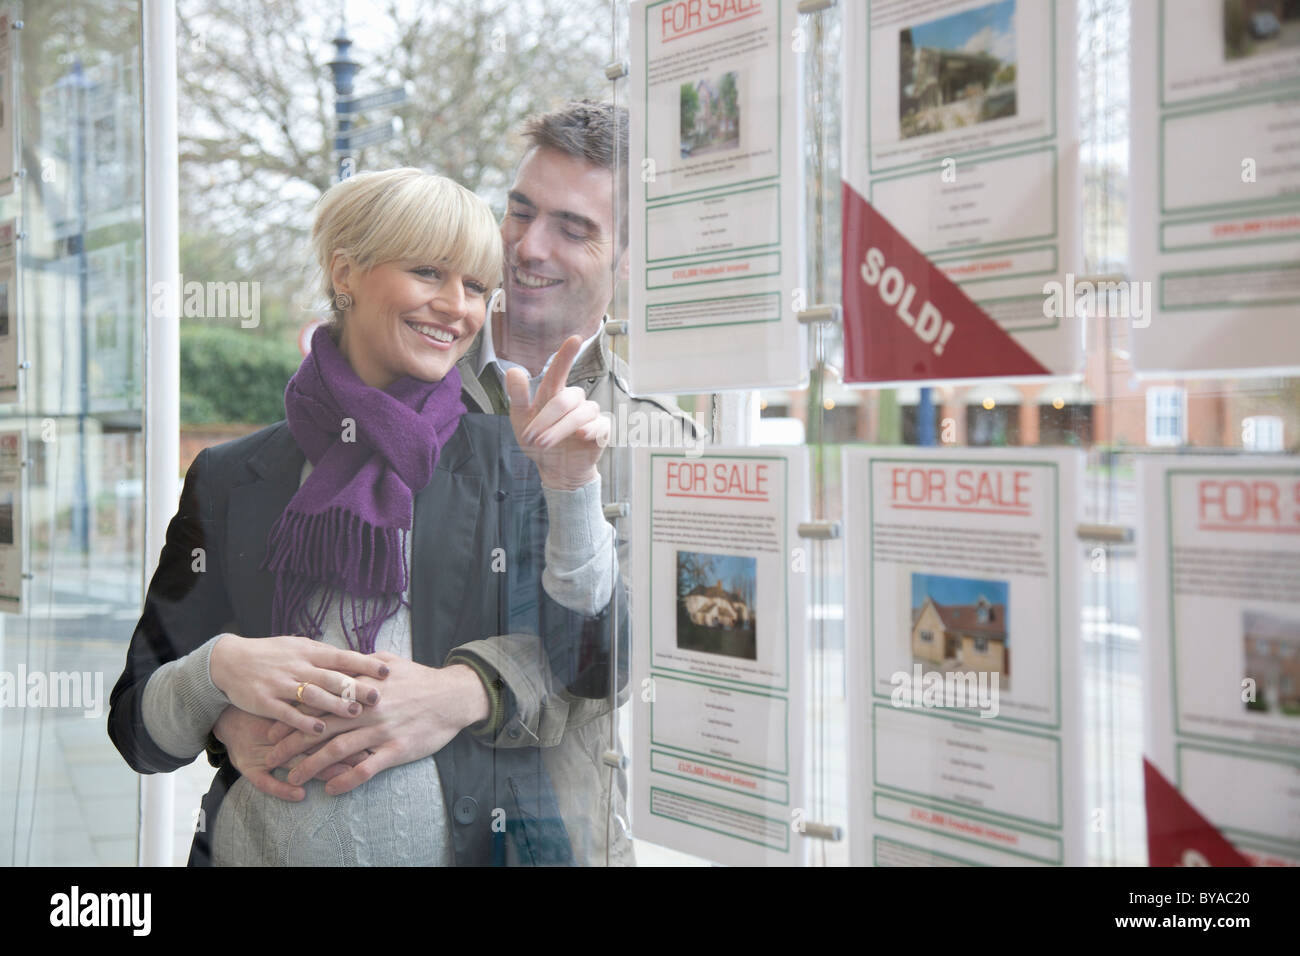 Couple looking into estate agents window - Stock Image